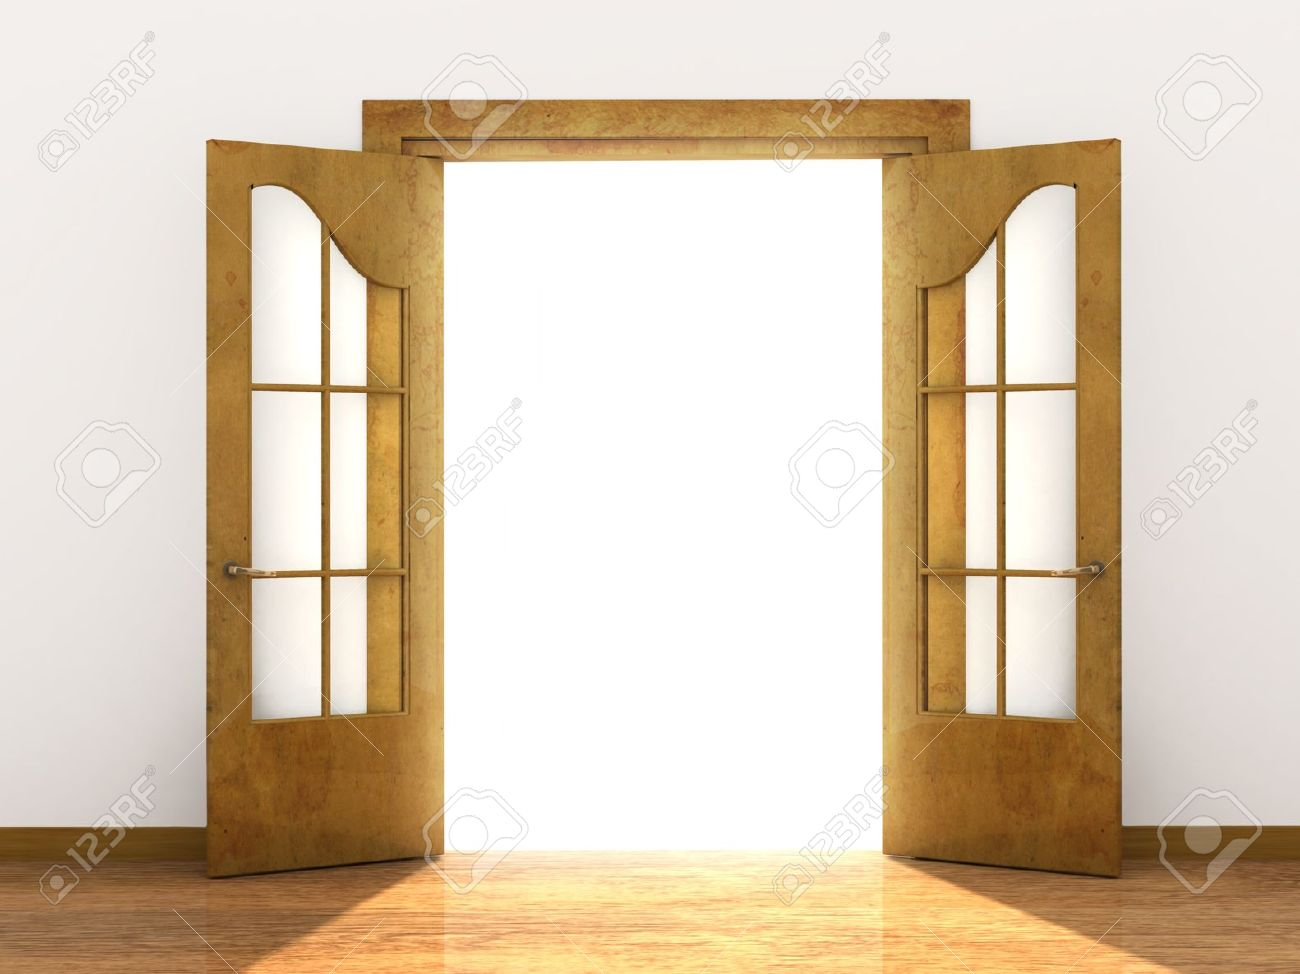 Welcome open church door clipart